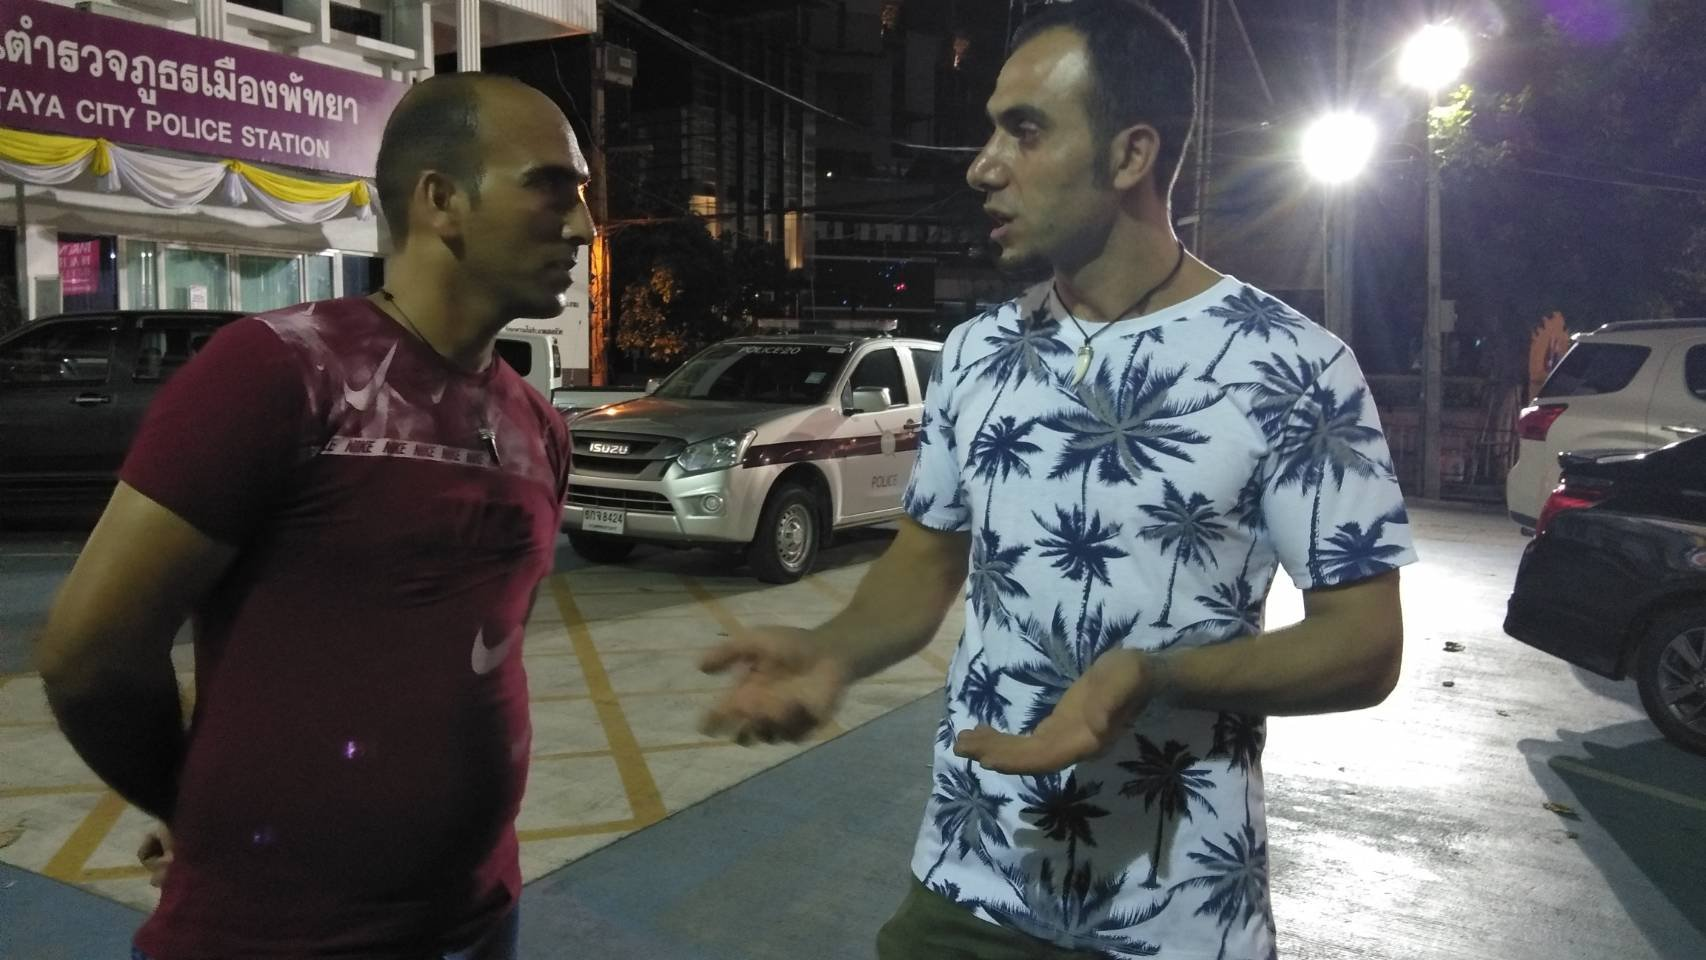 Iranian tourist sniffs scam after being fined for littering in Pattaya | Samui Times